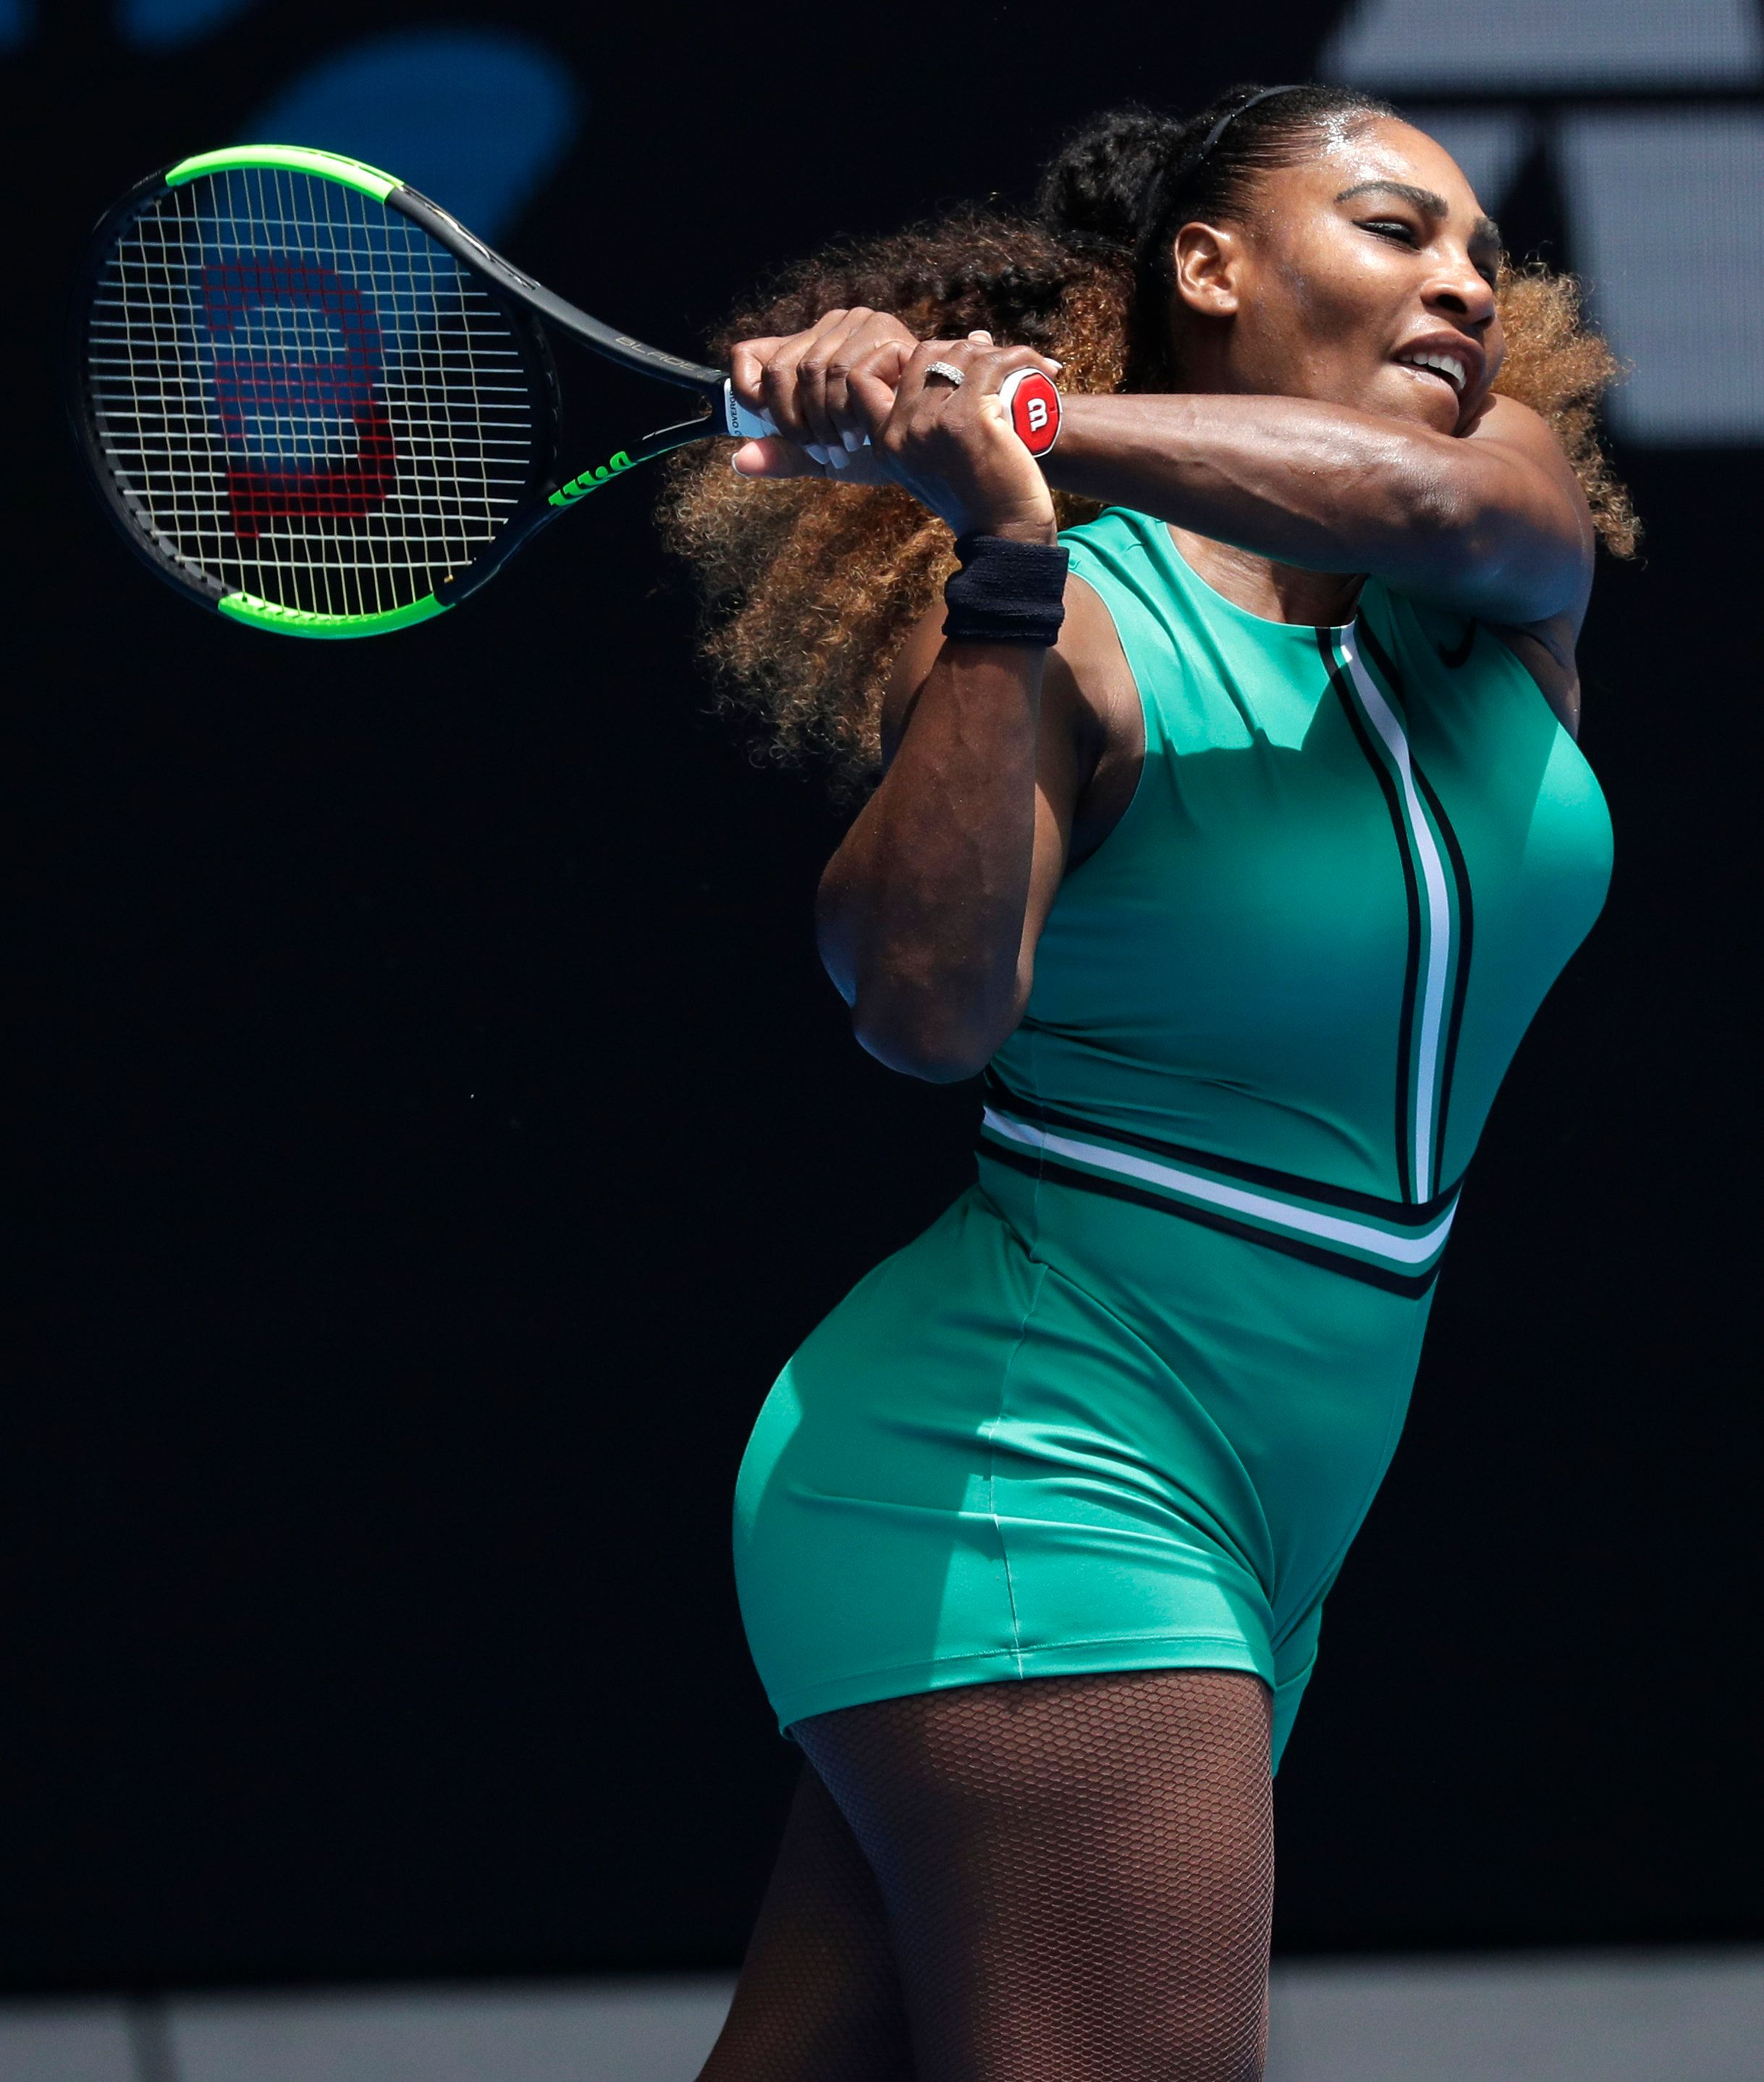 United States' Serena Williams hits a backhand return to Germany's Tatjana Maria during their first round match at the Australian Open tennis championships in Melbourne, Australia, Tuesday, Jan. 15, 2019. (AP Photo/Kin Cheung)